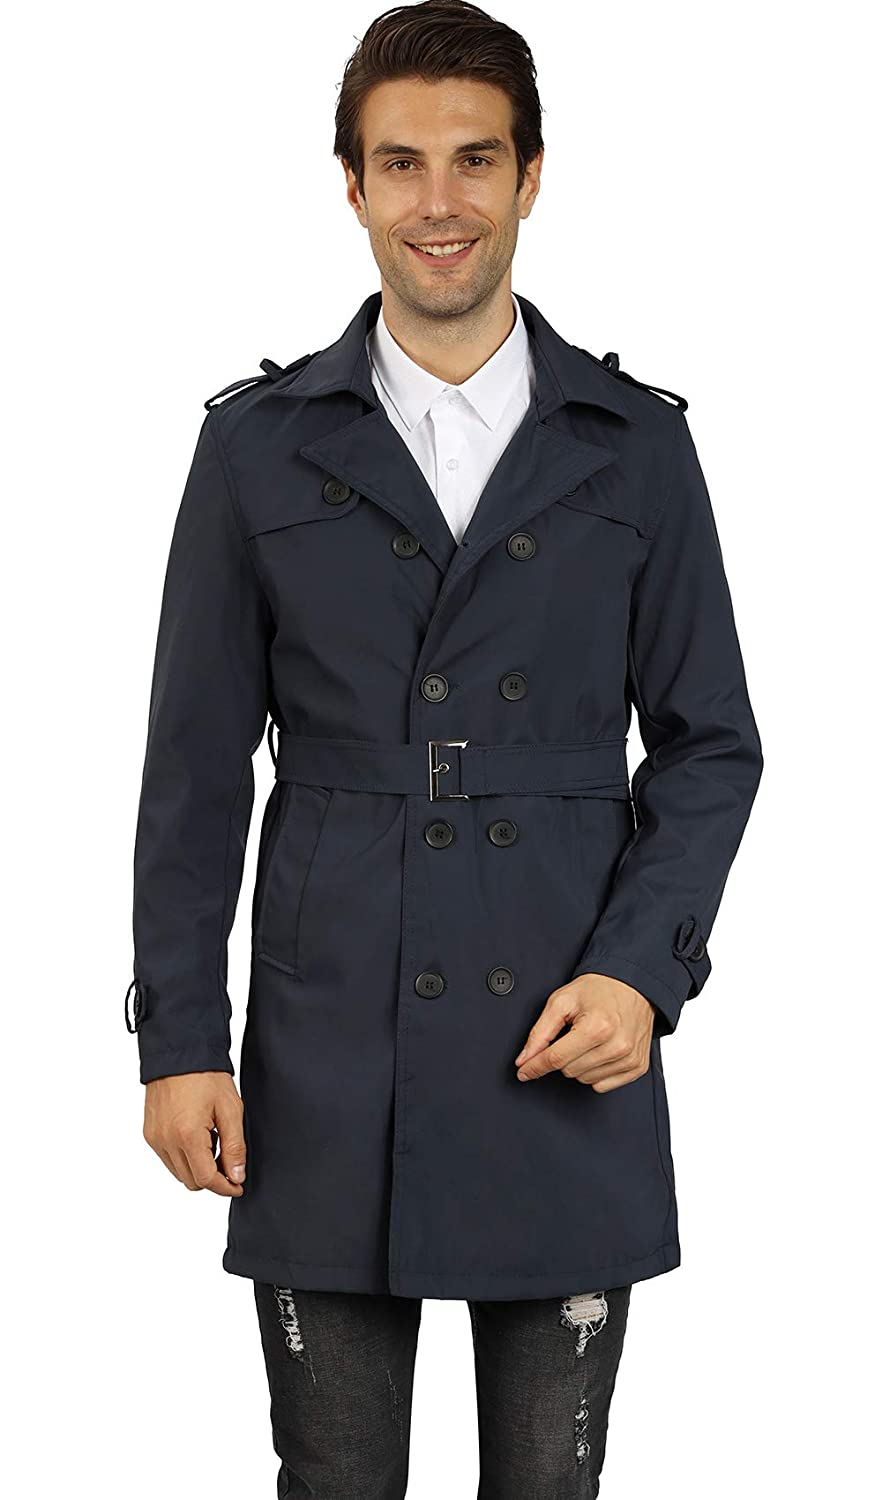 WULFUL Mens Double Breasted Trench Coat Slim Fit Business Mid-Long Jacket with Belt